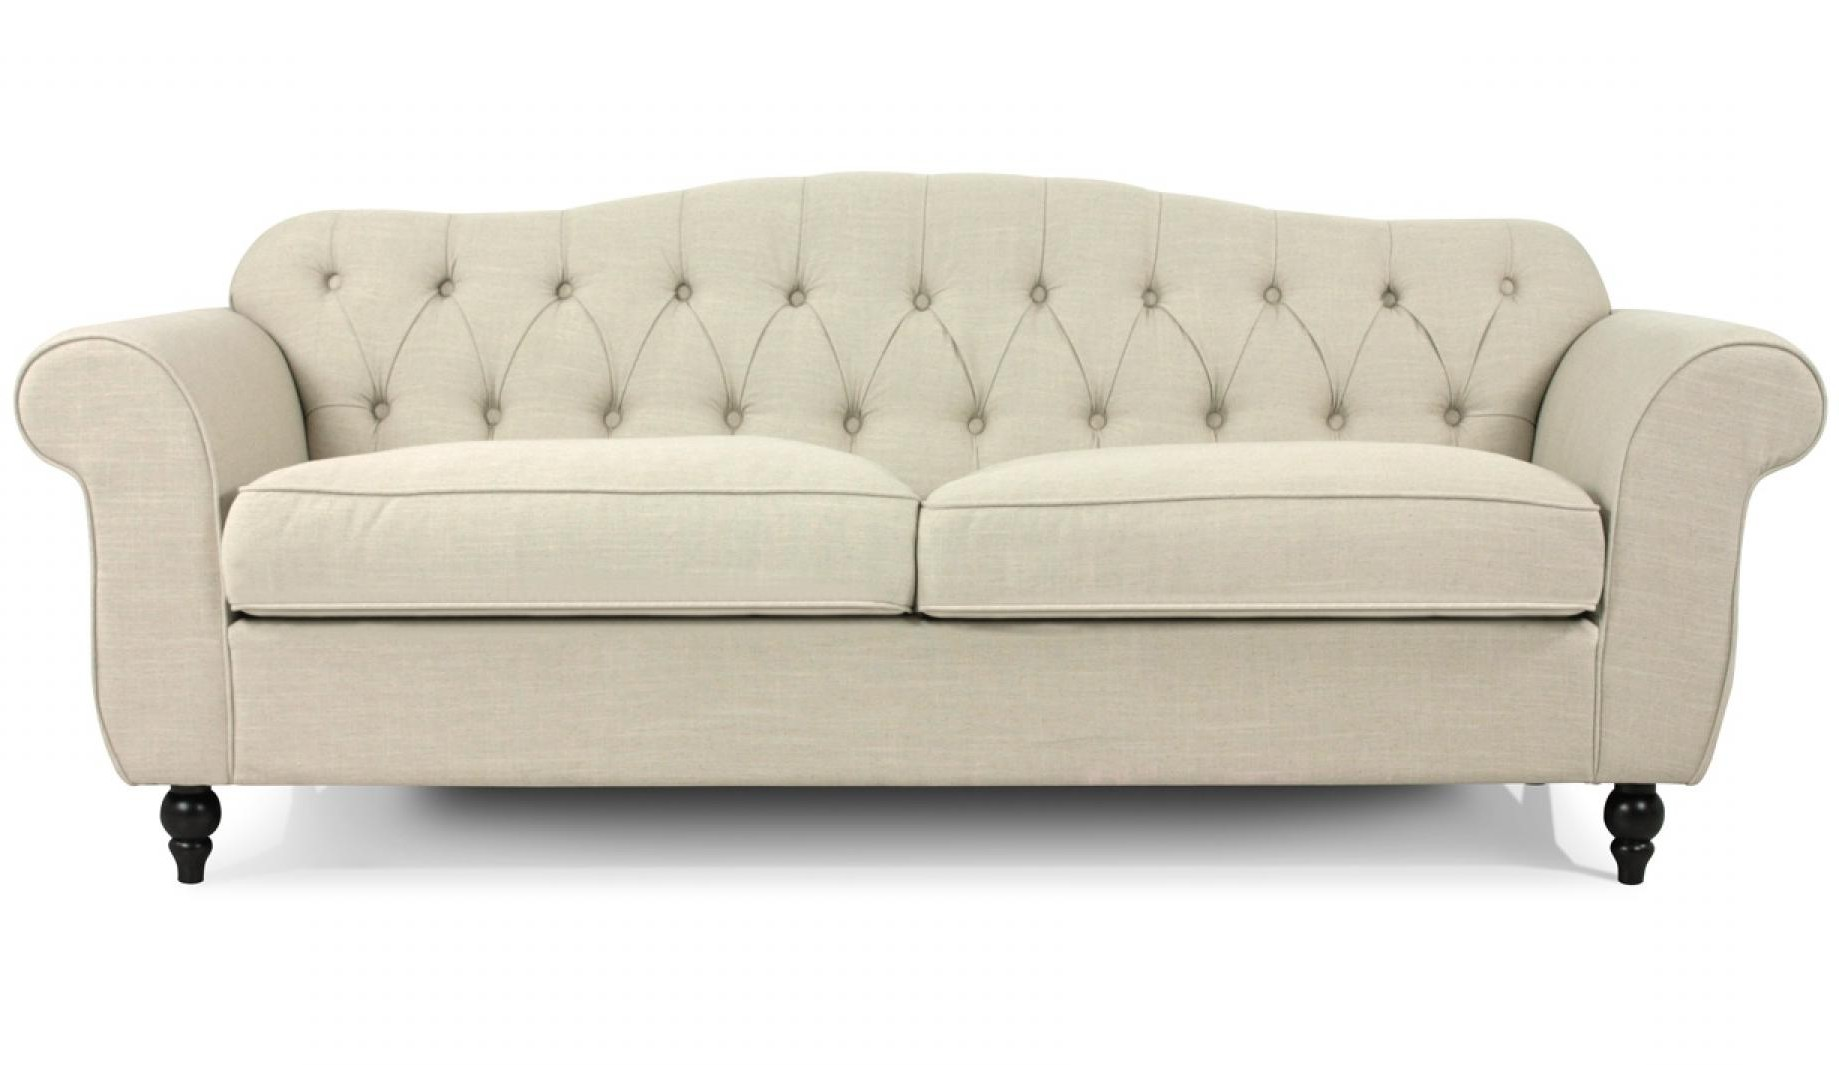 Canapé Chesterfield Tissu 2 Places